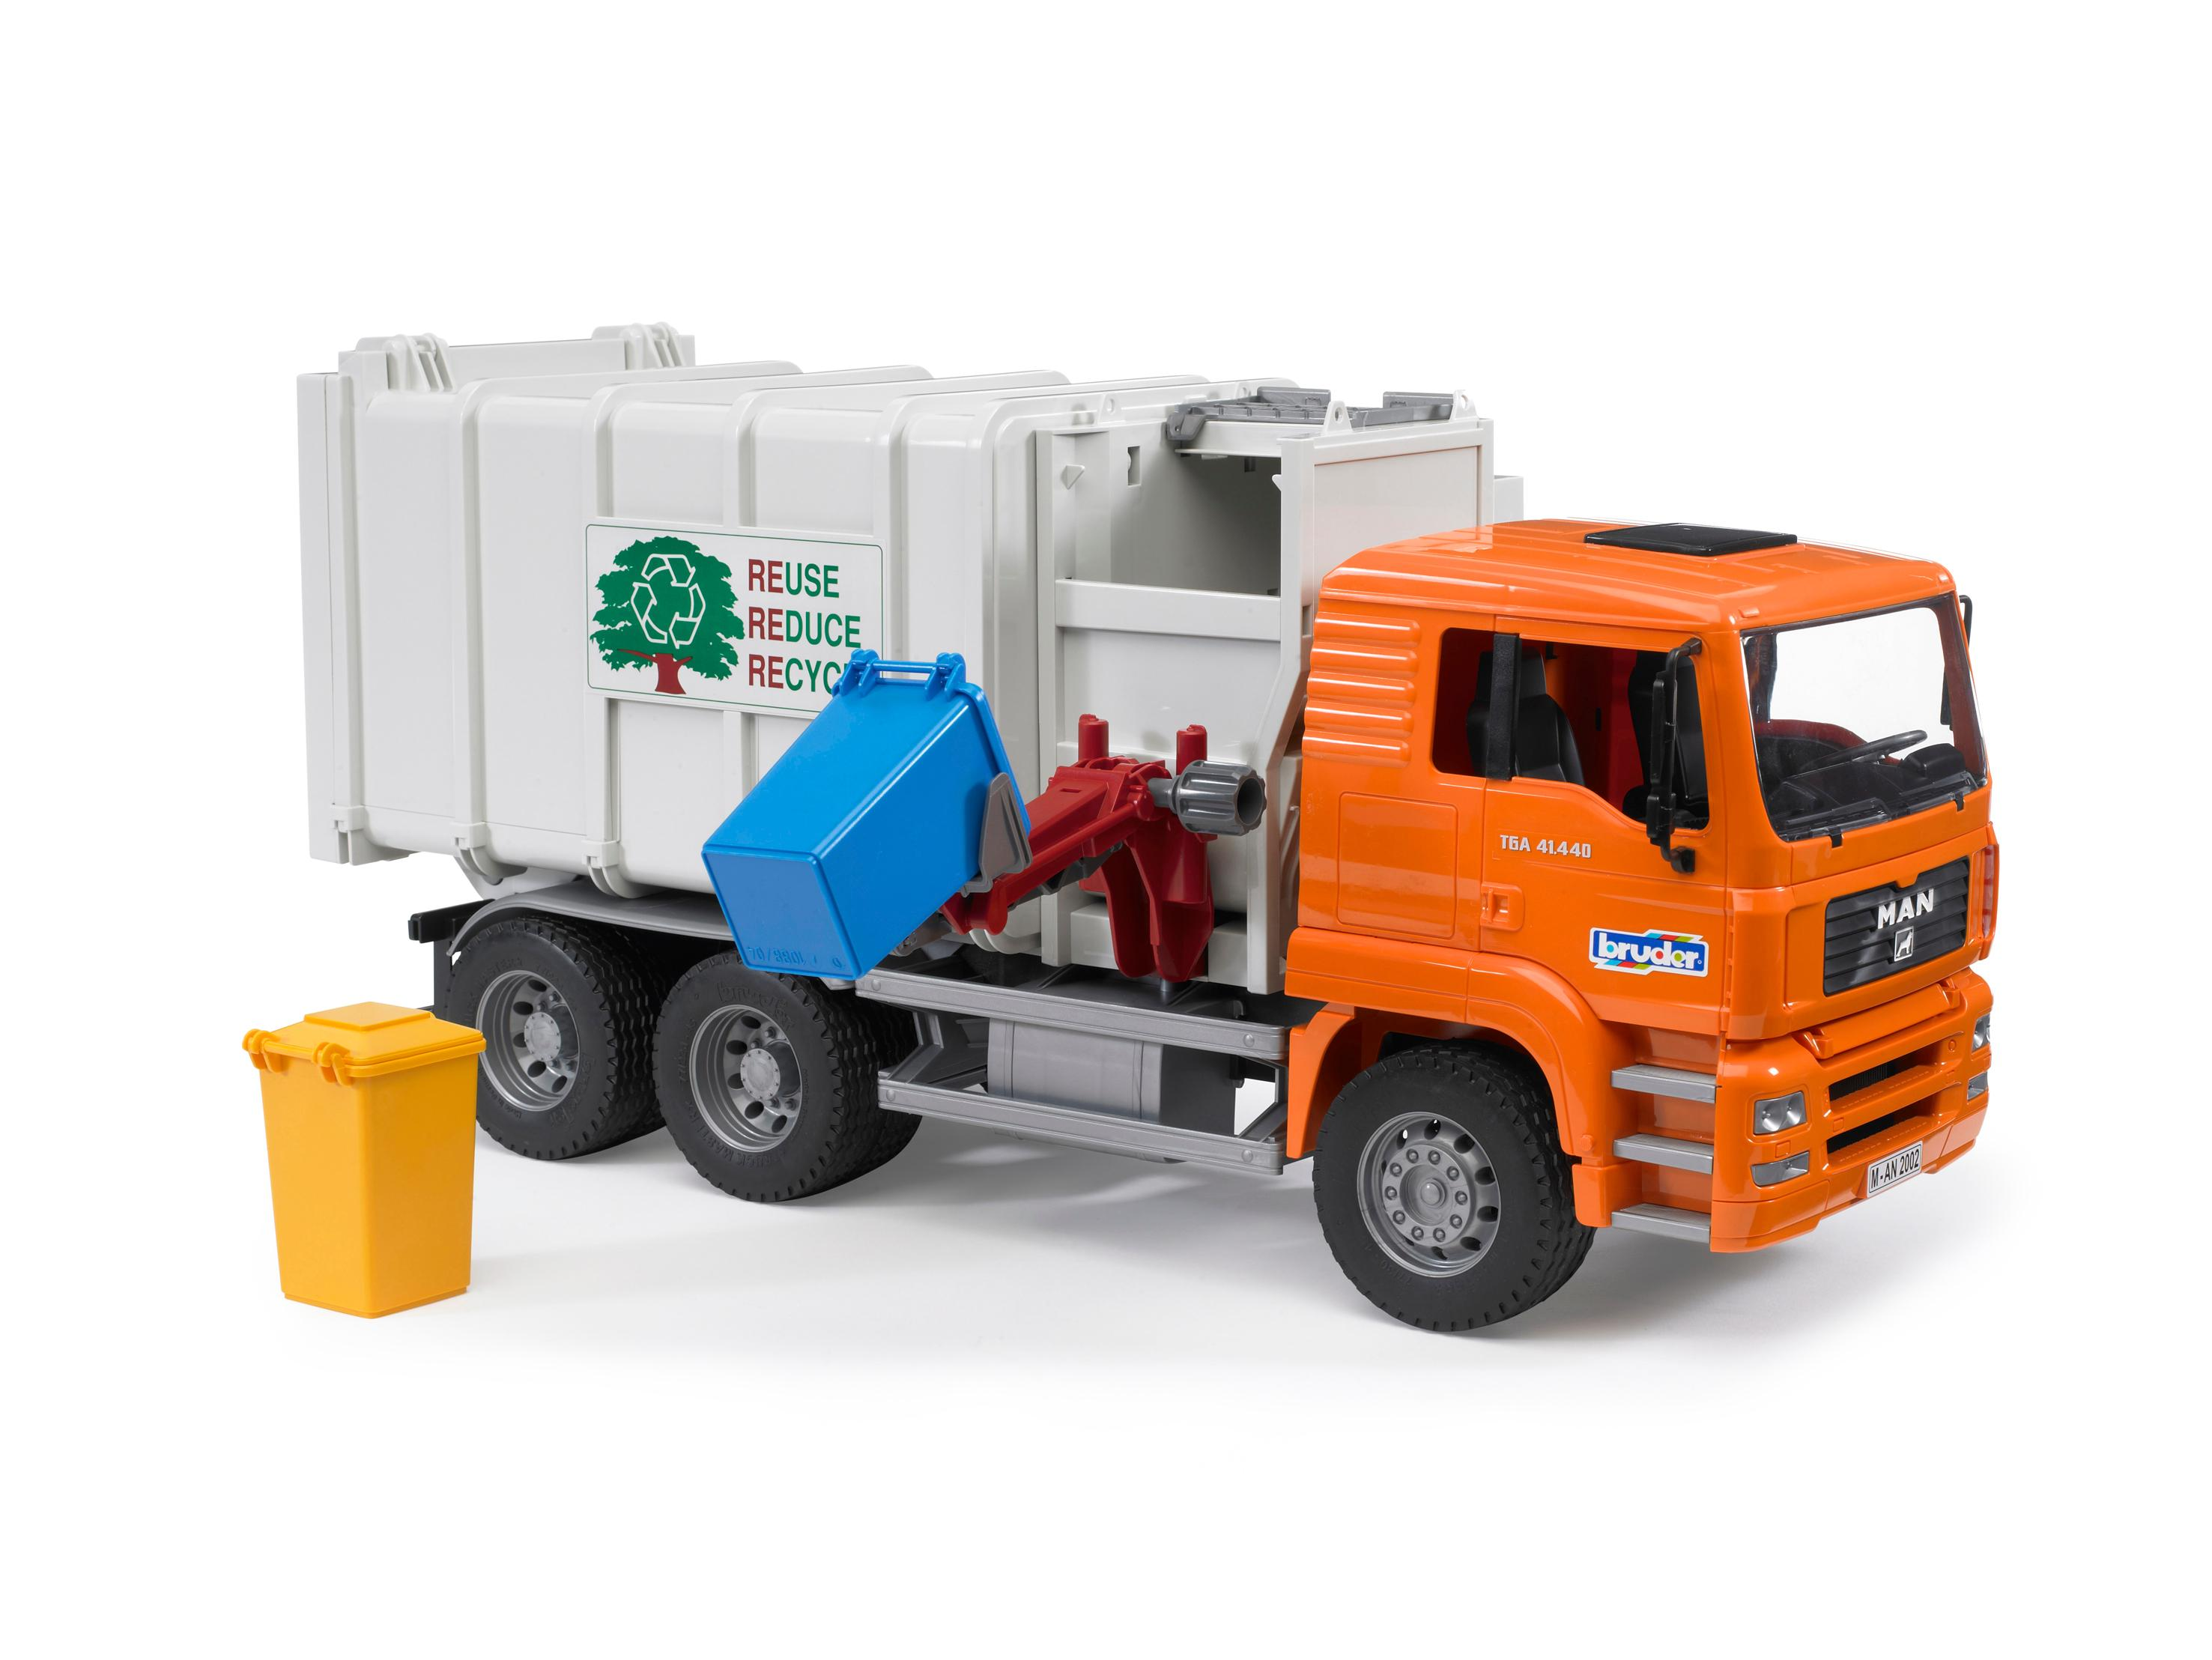 bruder 02761 camion benne man orange avec 2 poubelles jeux et jouets. Black Bedroom Furniture Sets. Home Design Ideas